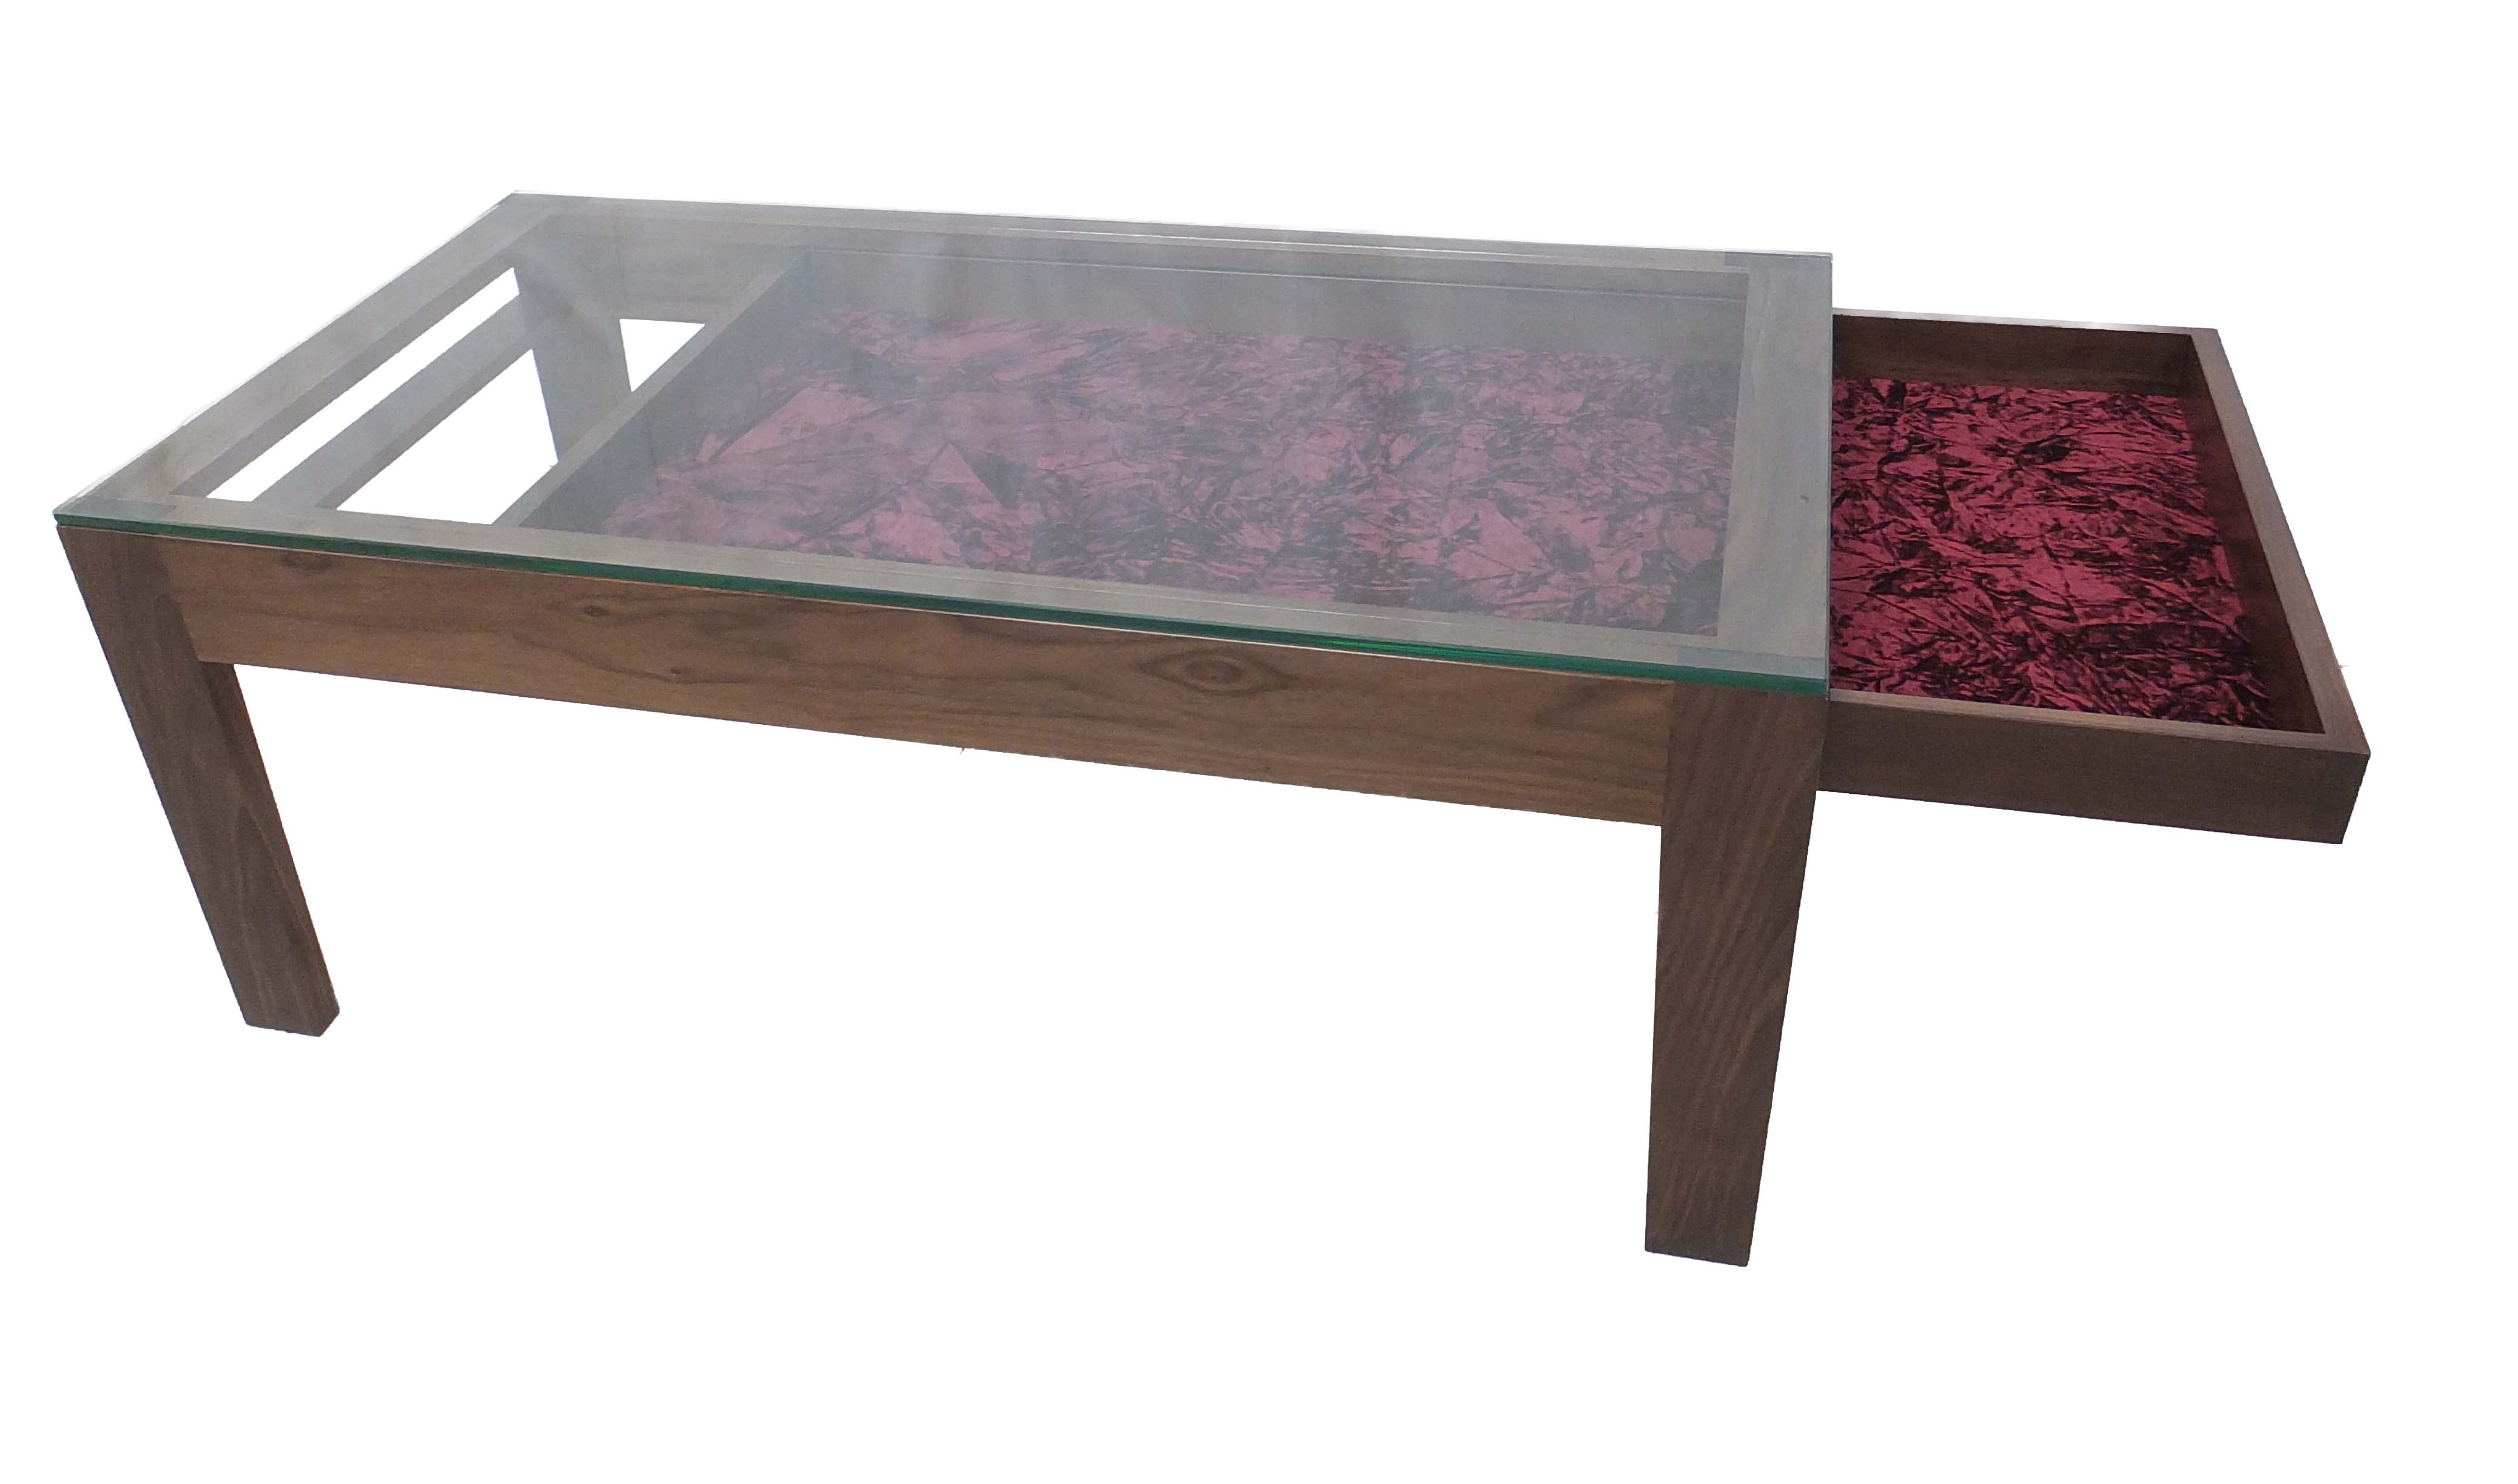 coffee tables ideas simple glass top for table replacement modern unuque sample fantastic white surface legs small wooden end wall clocks homesense pallet tures target drawer